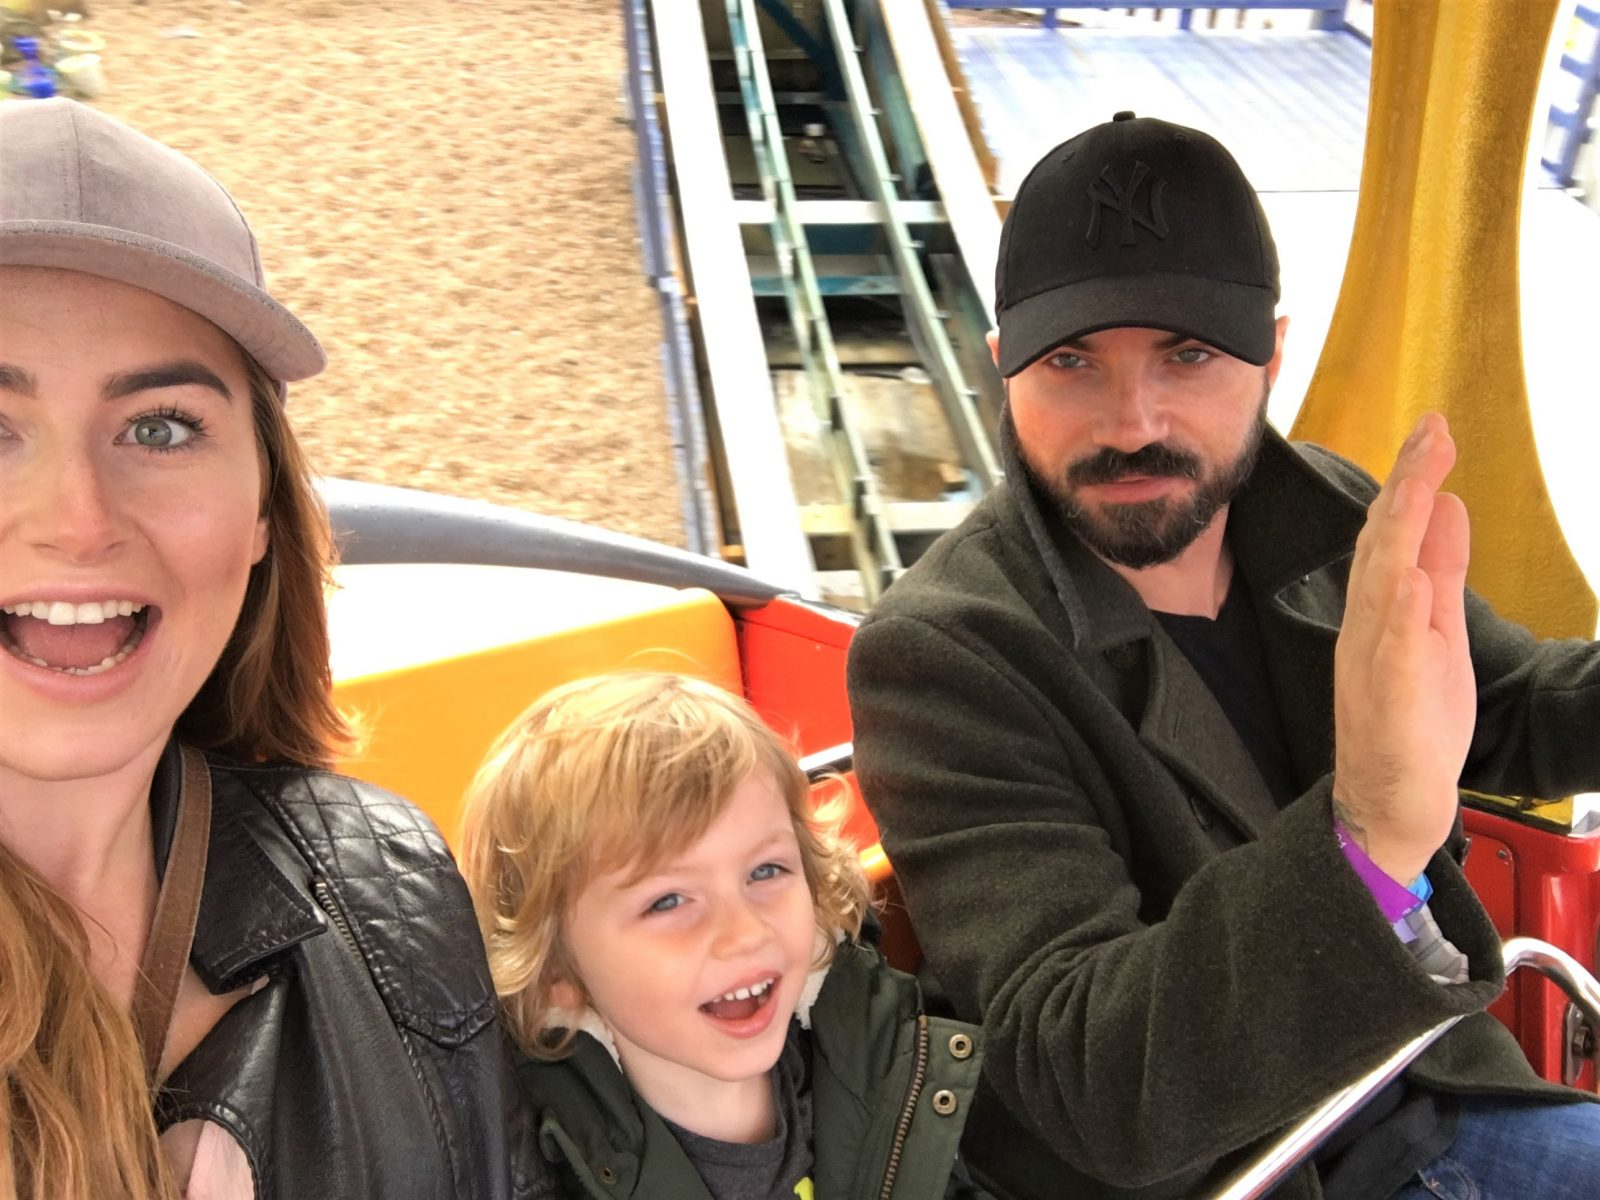 myself, my son and husband taking a selfie on a ride and smiling